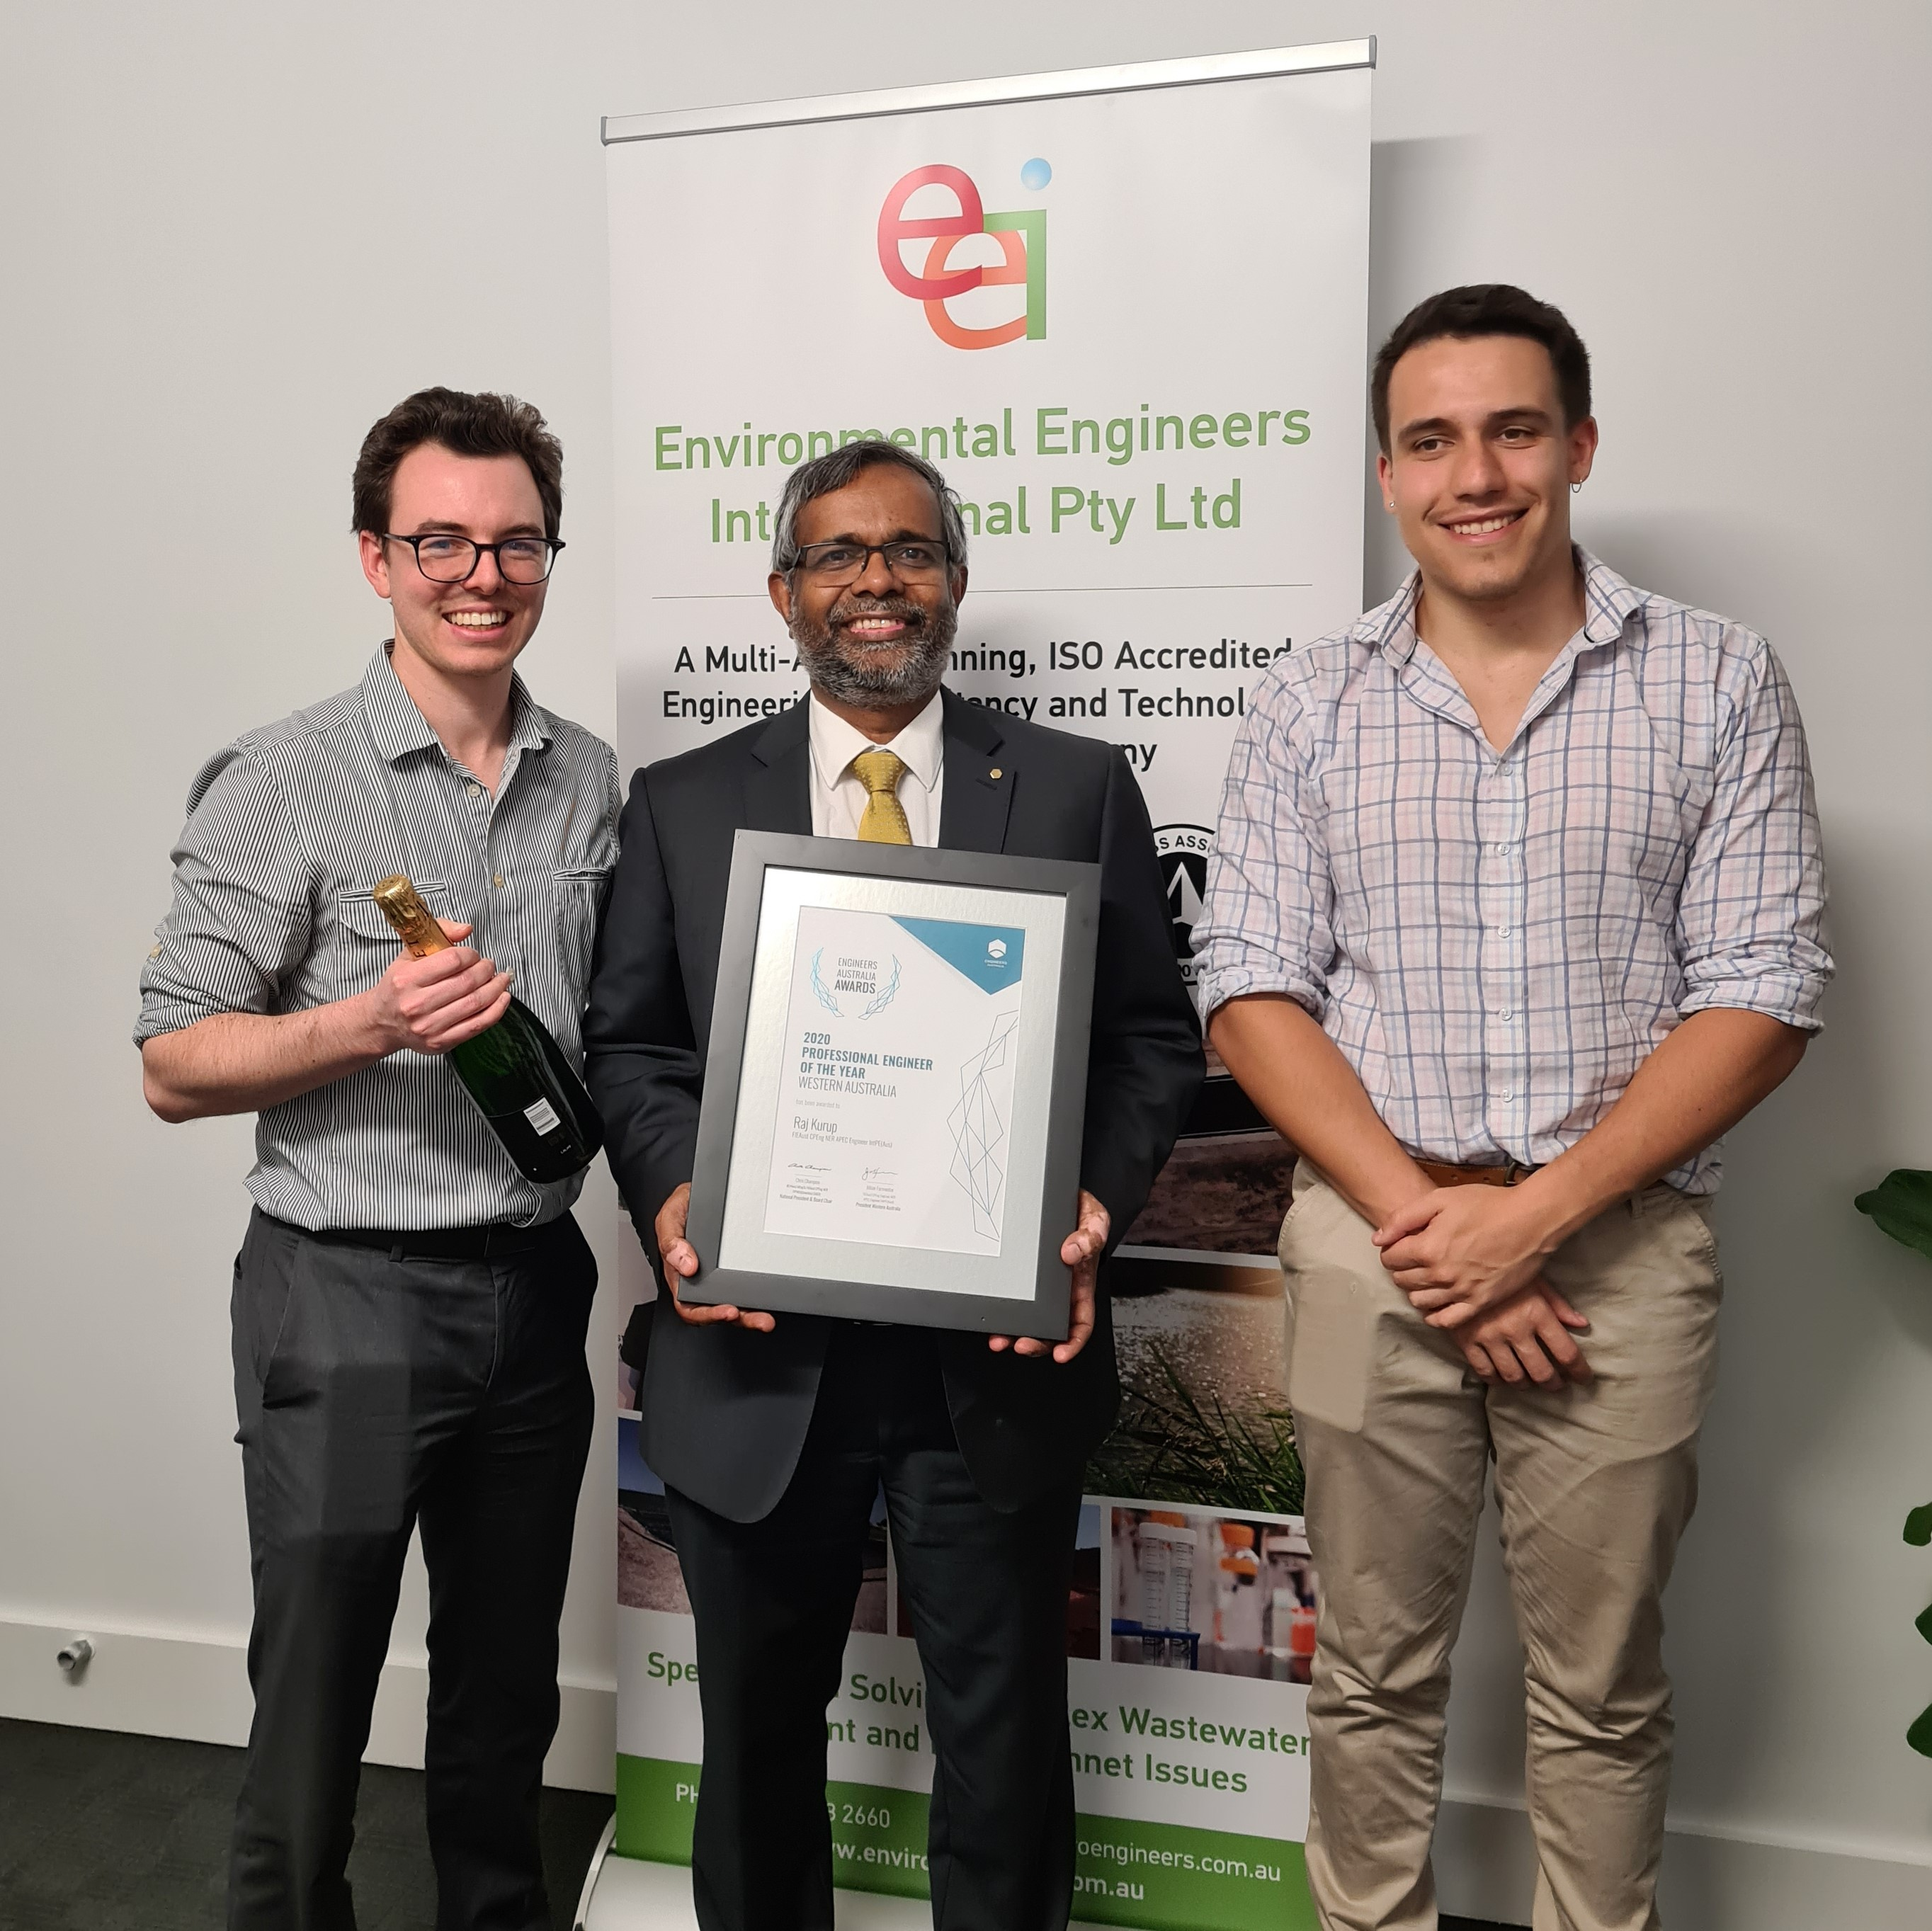 EEI CEO Dr. Raj Kurup wins the Engineers Australia 2020 Professional Engineer of the Year Award for Western Australia